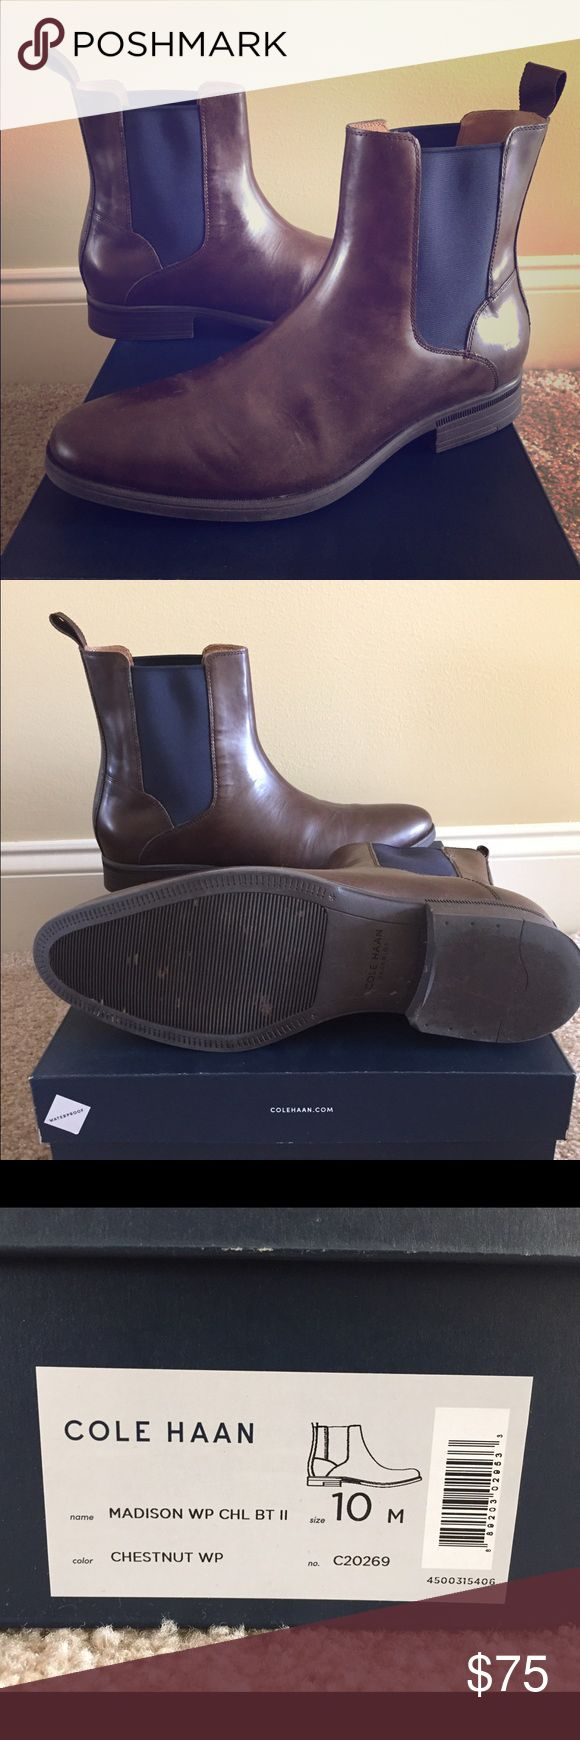 Cole Haan boots Cole Haan waterproof boots.  Only worn a few times. In great condition. Cole Haan Shoes Boots